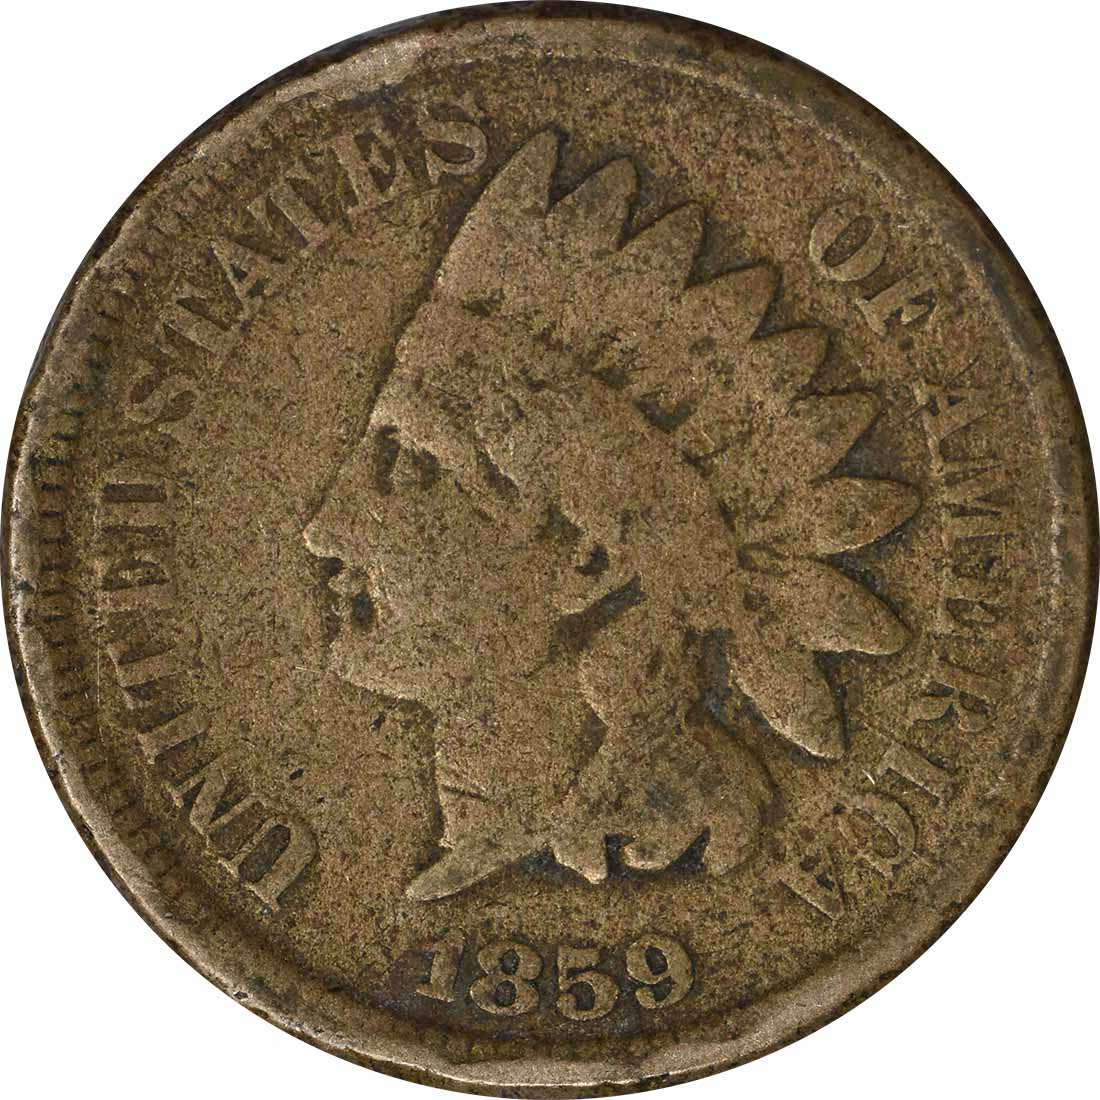 1859 Indian Cent, AG, Uncertified